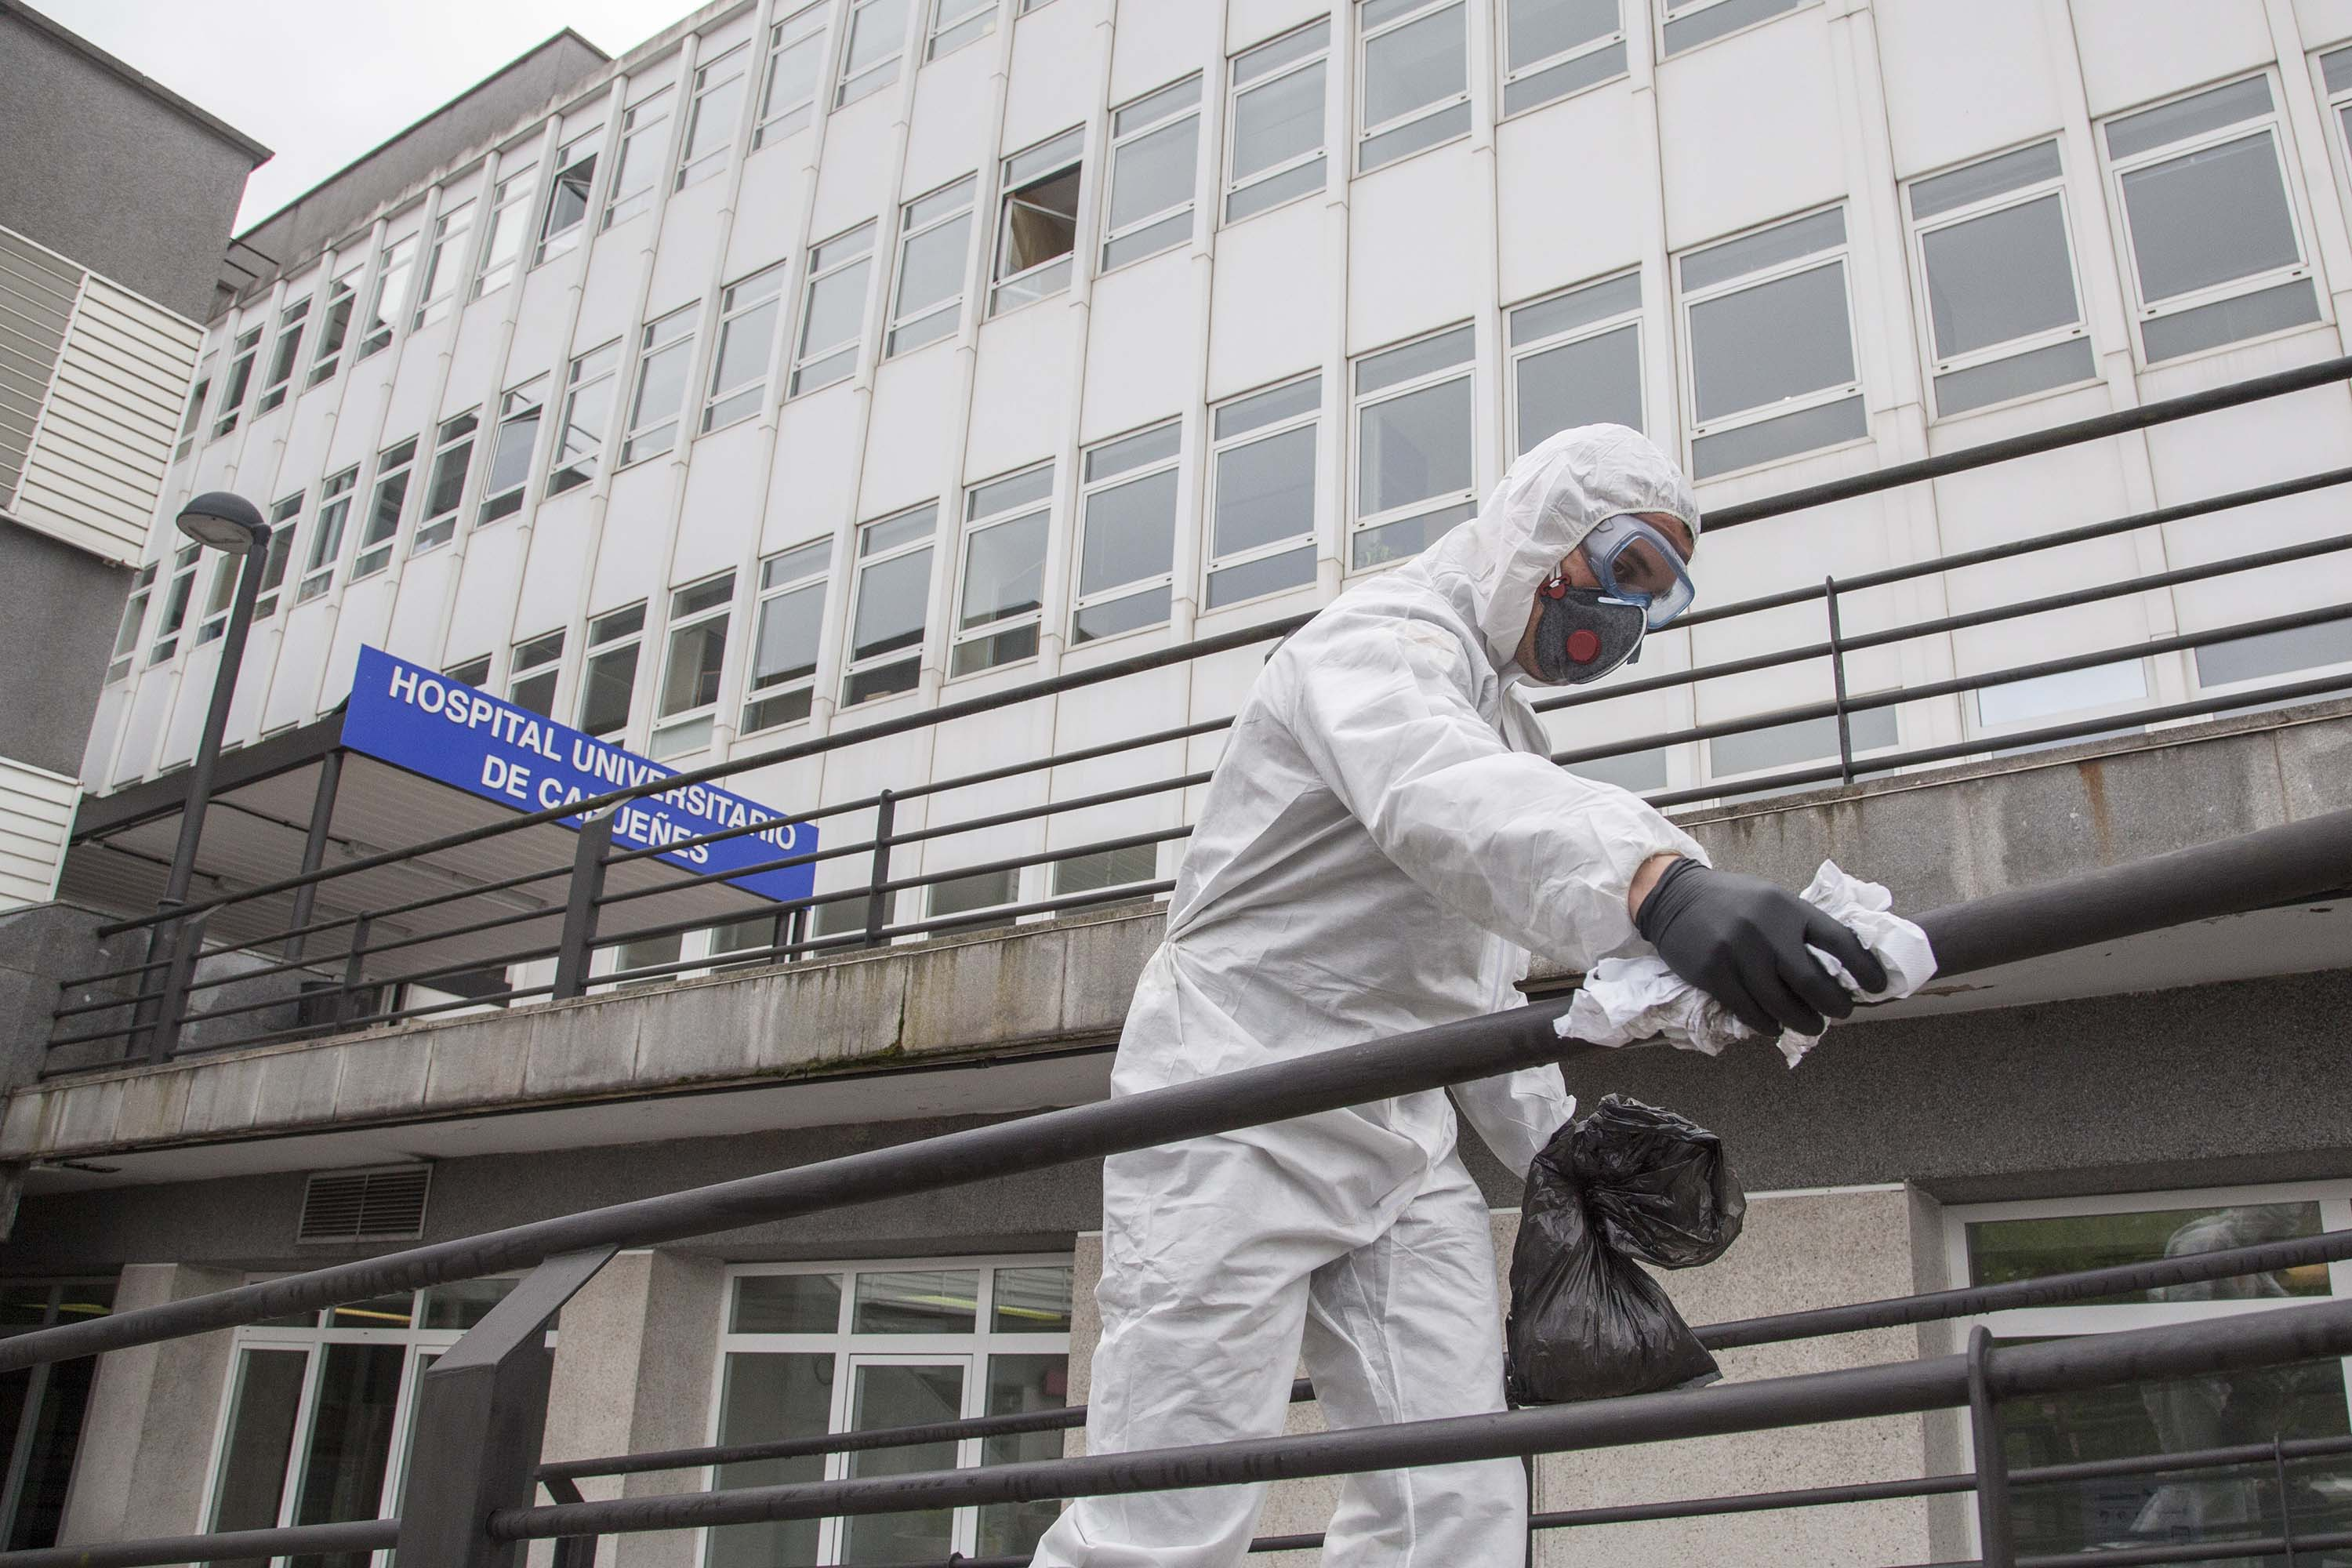 A member of Spain's UME (Military Emergency Unit) disinfects outside the Cabuenes hospital in Gijon, Spain on March 18.